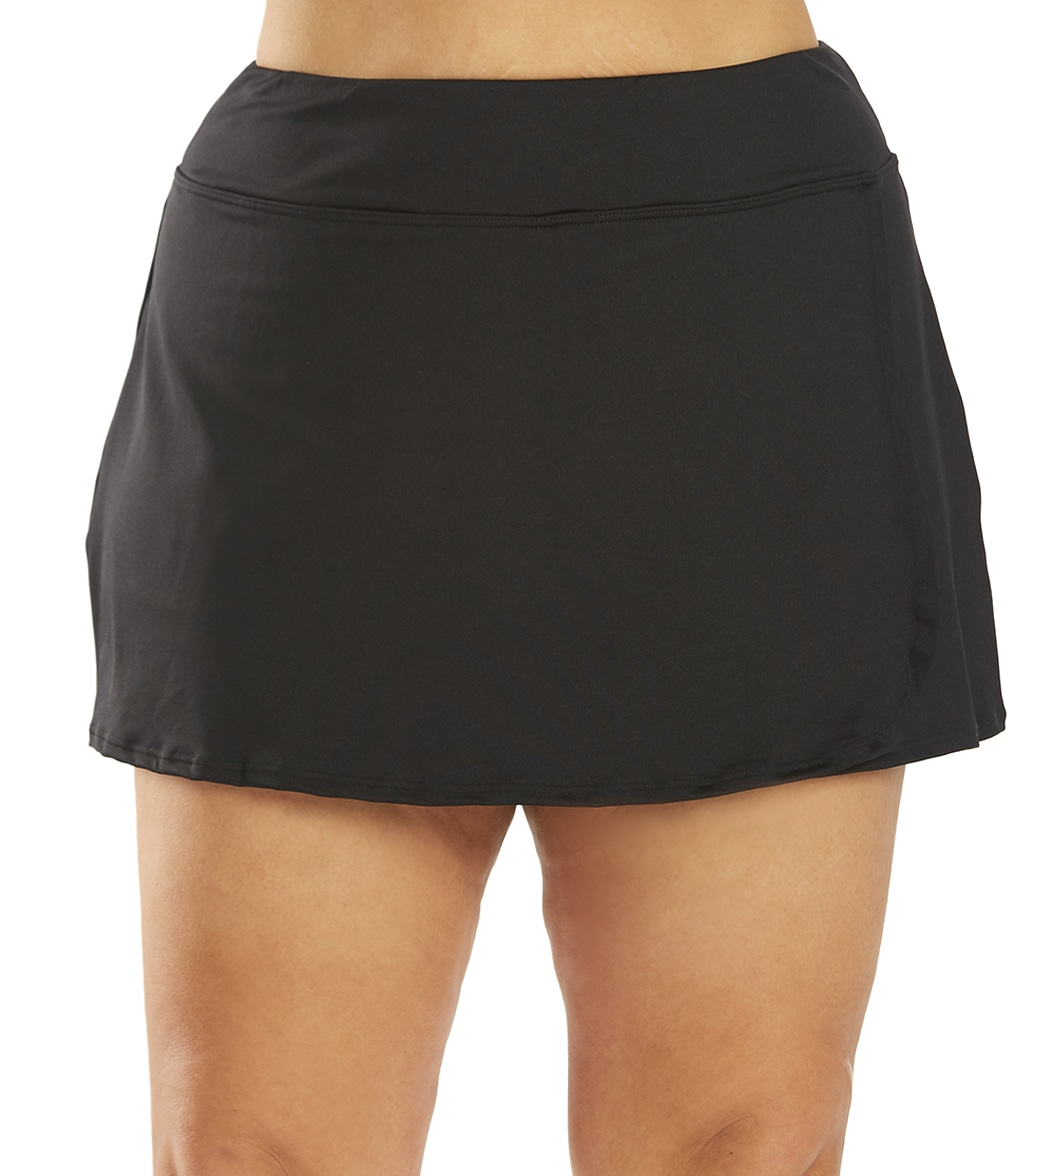 TYR Plus Size Swim Skort at SwimOutlet.com - Free Shipping 990507697b0b